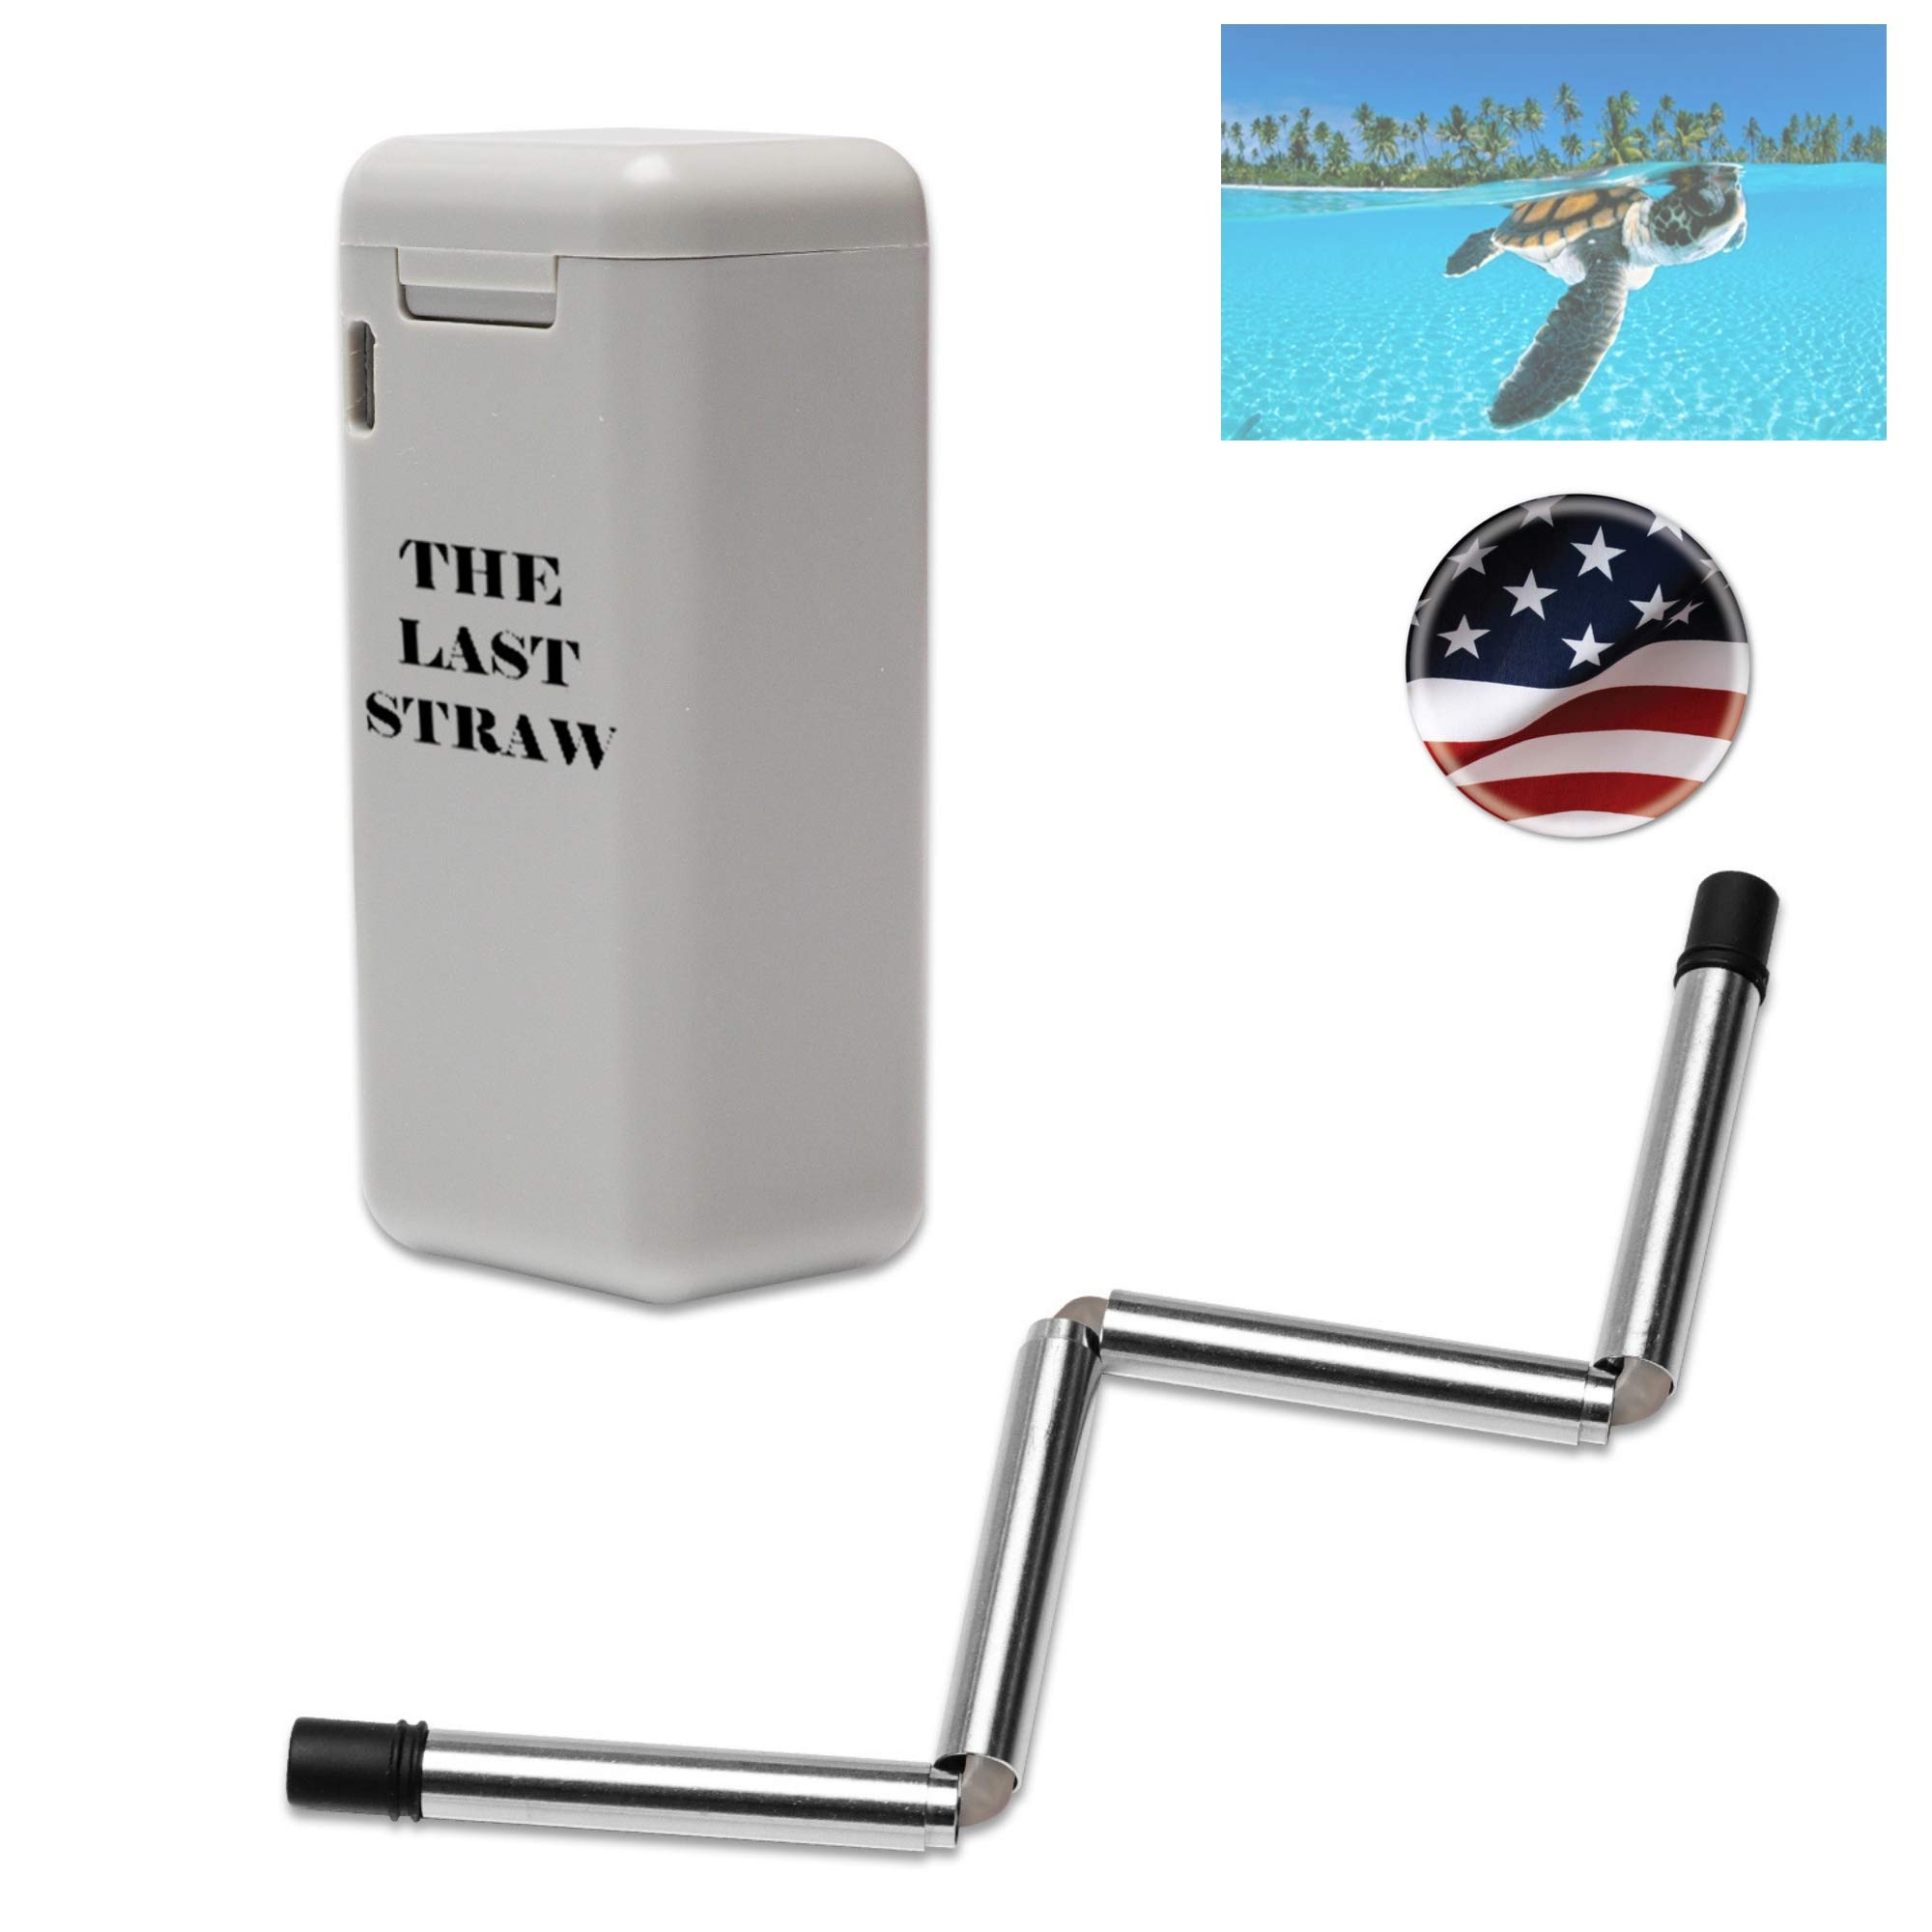 The Last Straw | Reusable Stainless Steel Collapsible Drinking Straw | BPA Free Medical Grade, Perfect for Everyday Use Yeti Tumbler Soda Coffee | Eco-Friendly Carrying Case with Cleaning Squeegee by The Last Straw